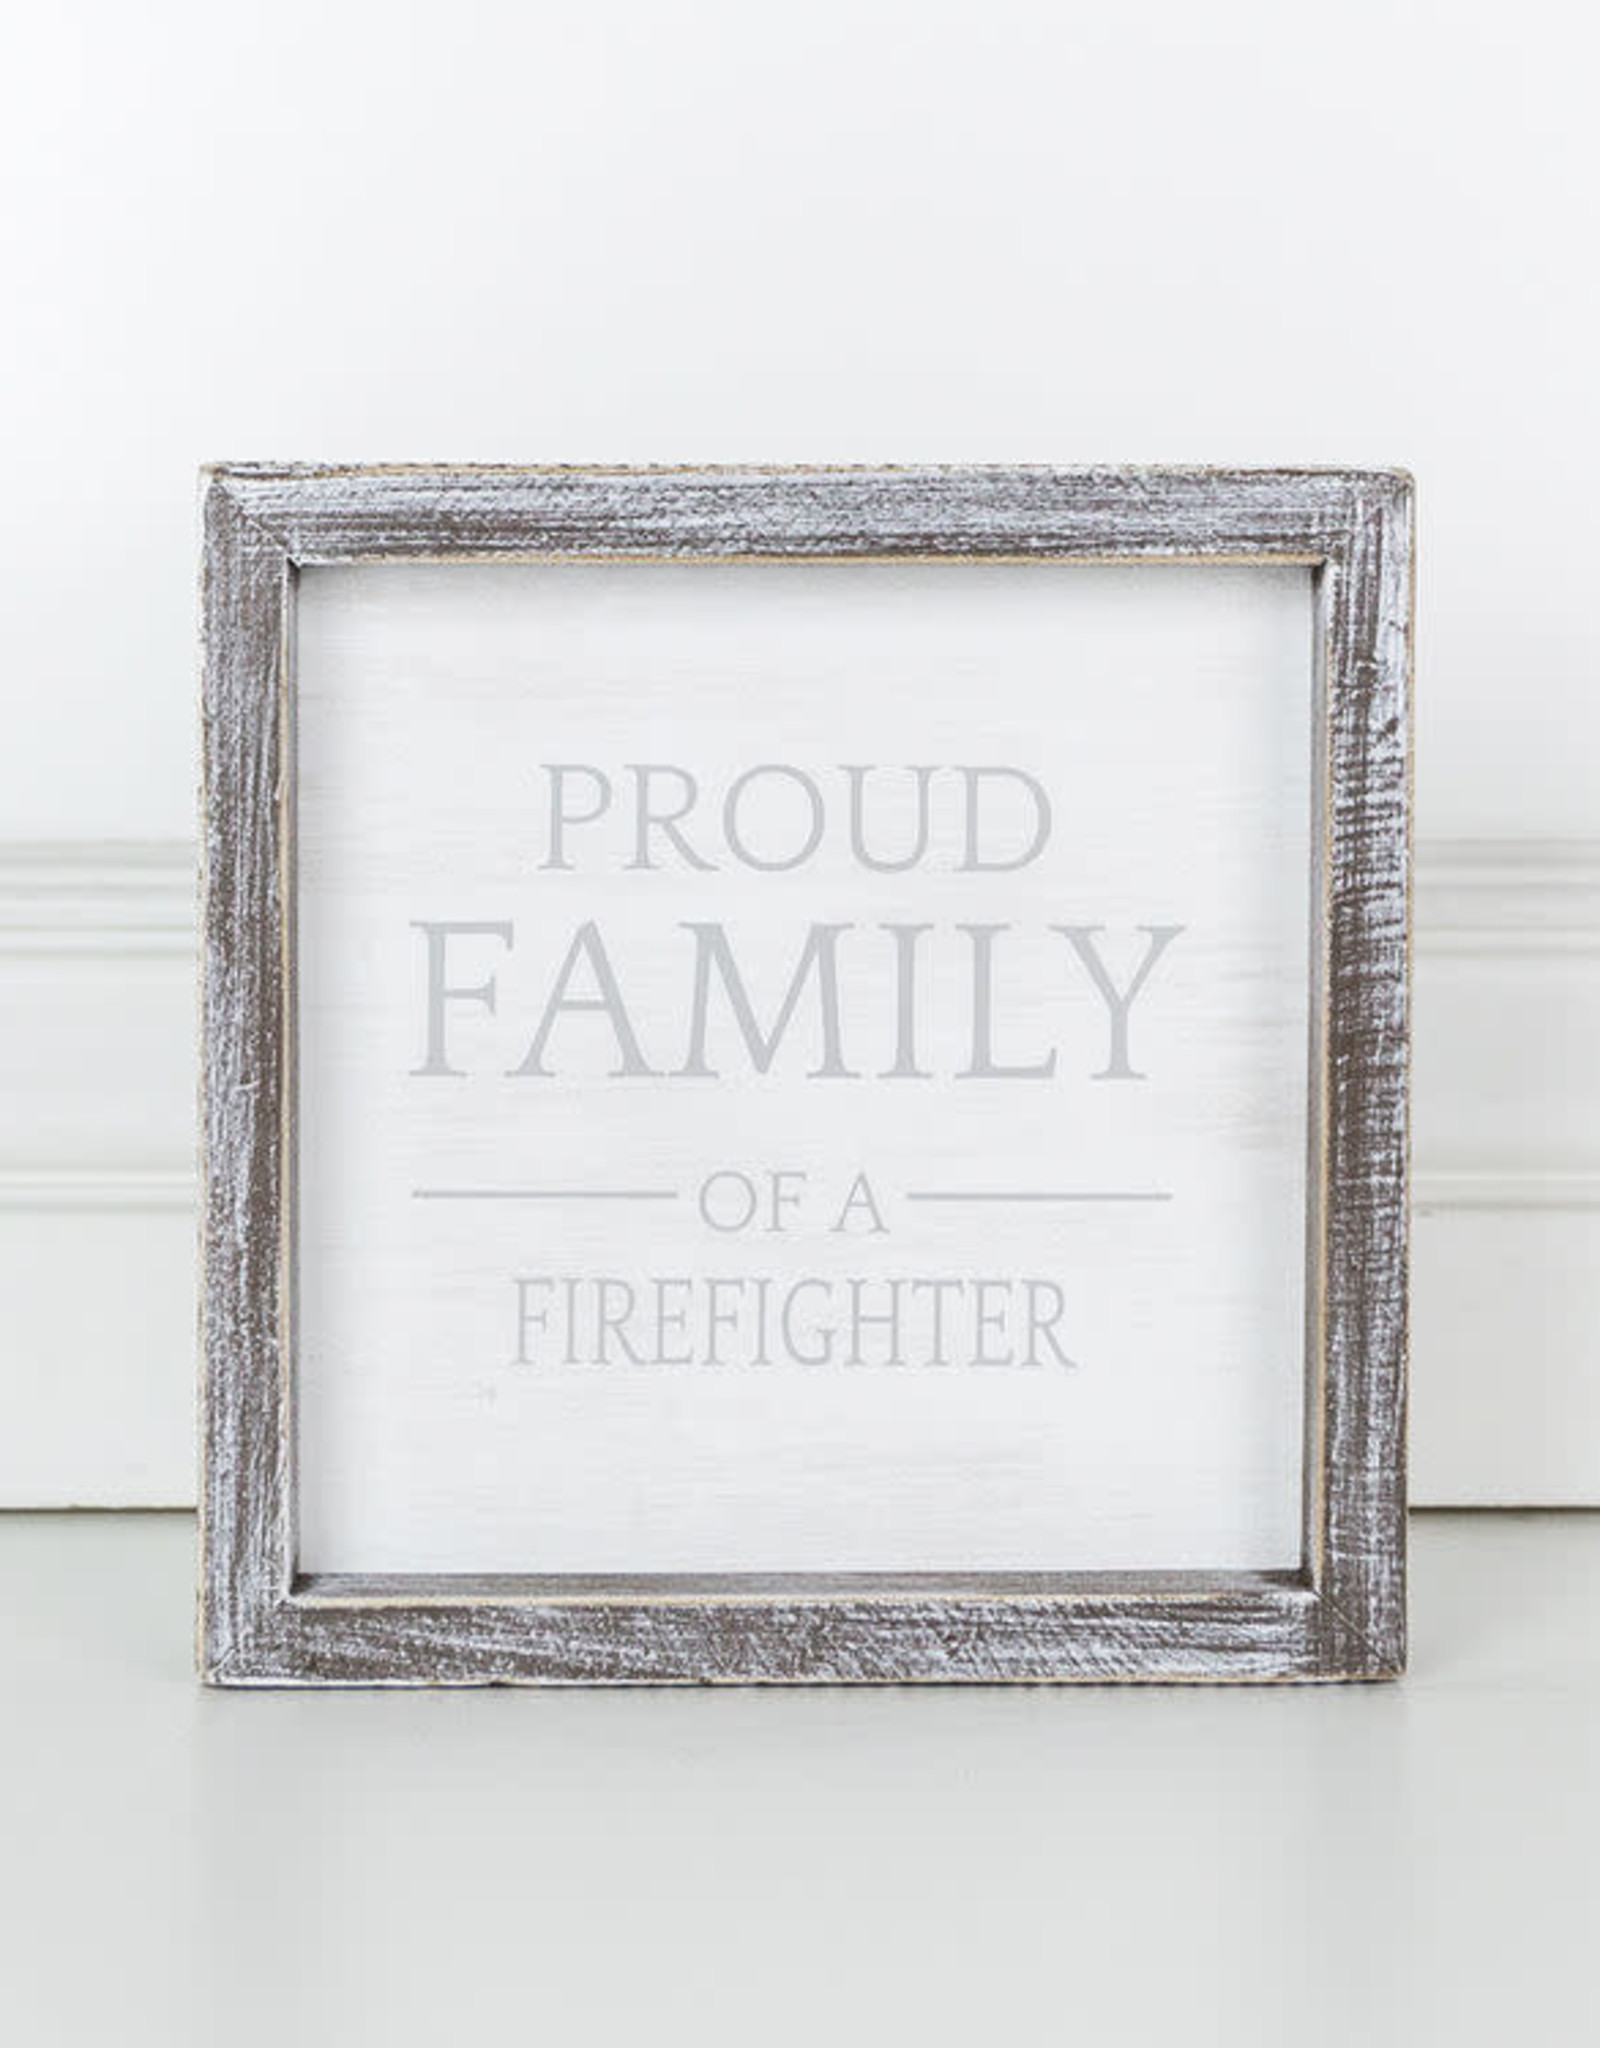 Adams & Co Proud Family - Firefigher